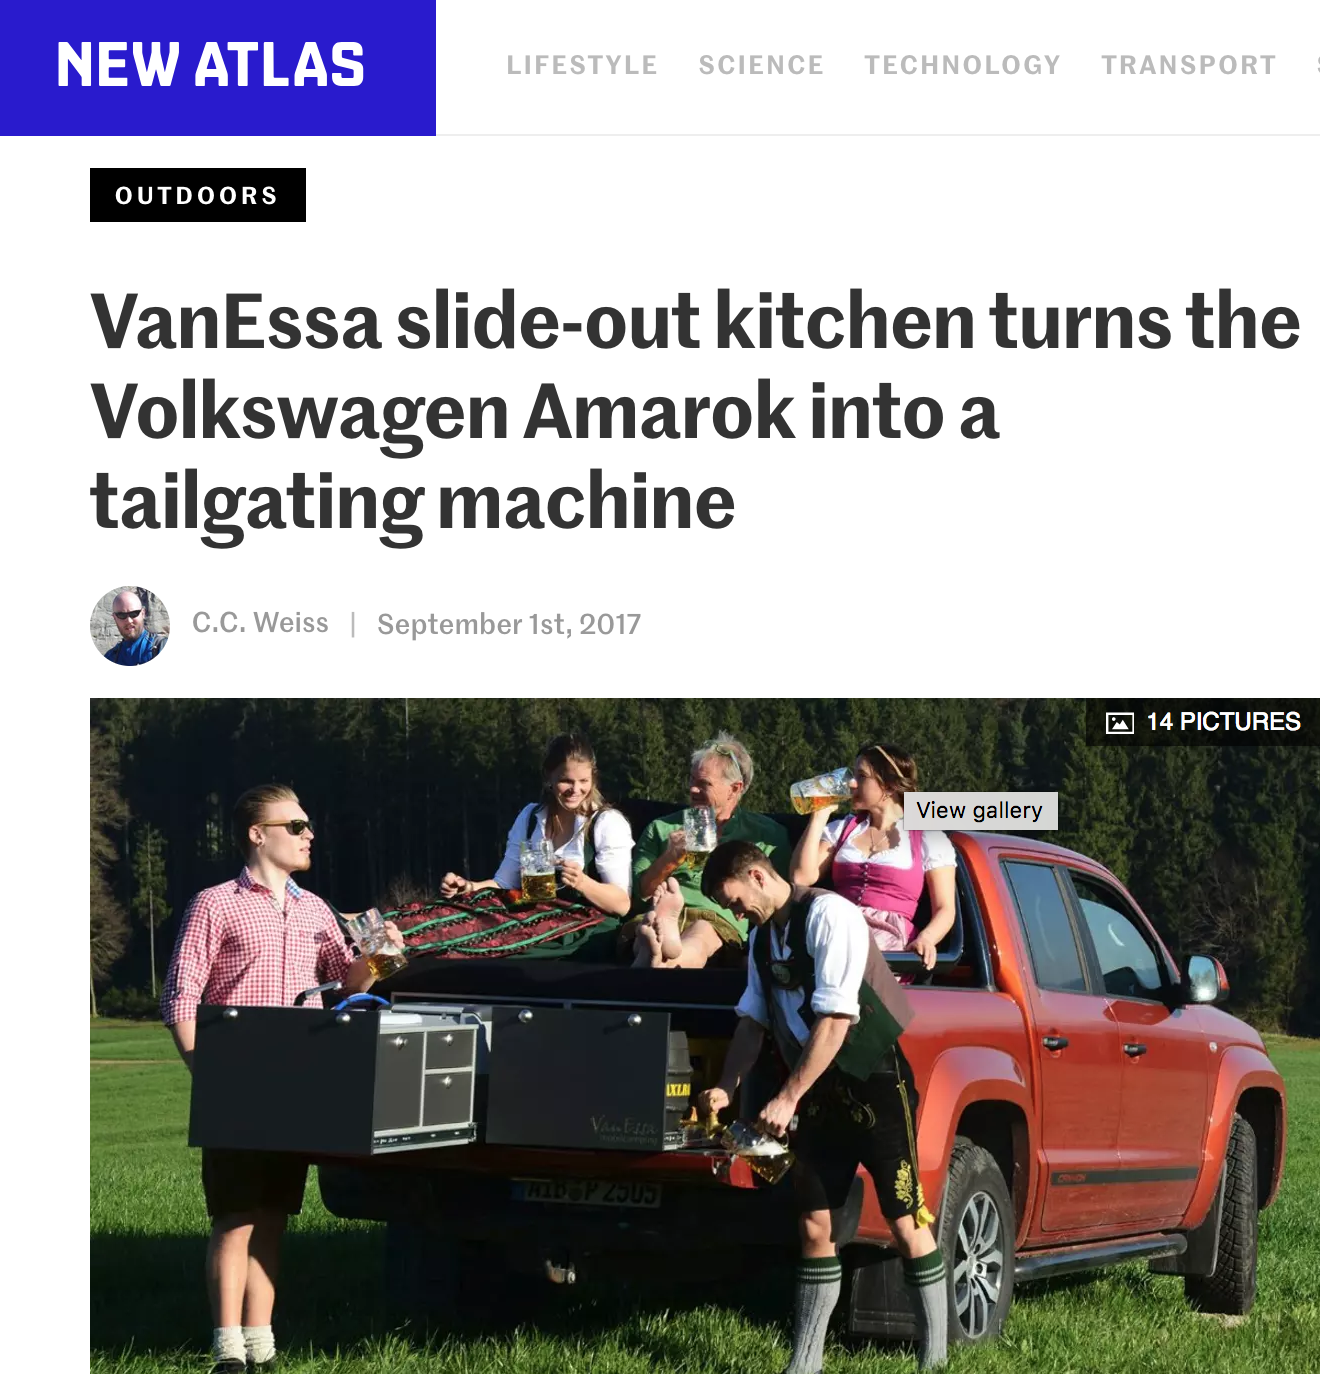 The tailgating machine - Germany's VanEssa is giving tailgaters and campers a sleek new way to enjoy a meal on the pickup tailgate. Its slide-out kitchen packs everything you need to serve up smoking hot food and icy cold beverages from the bed of the Volkswagen Amarok.